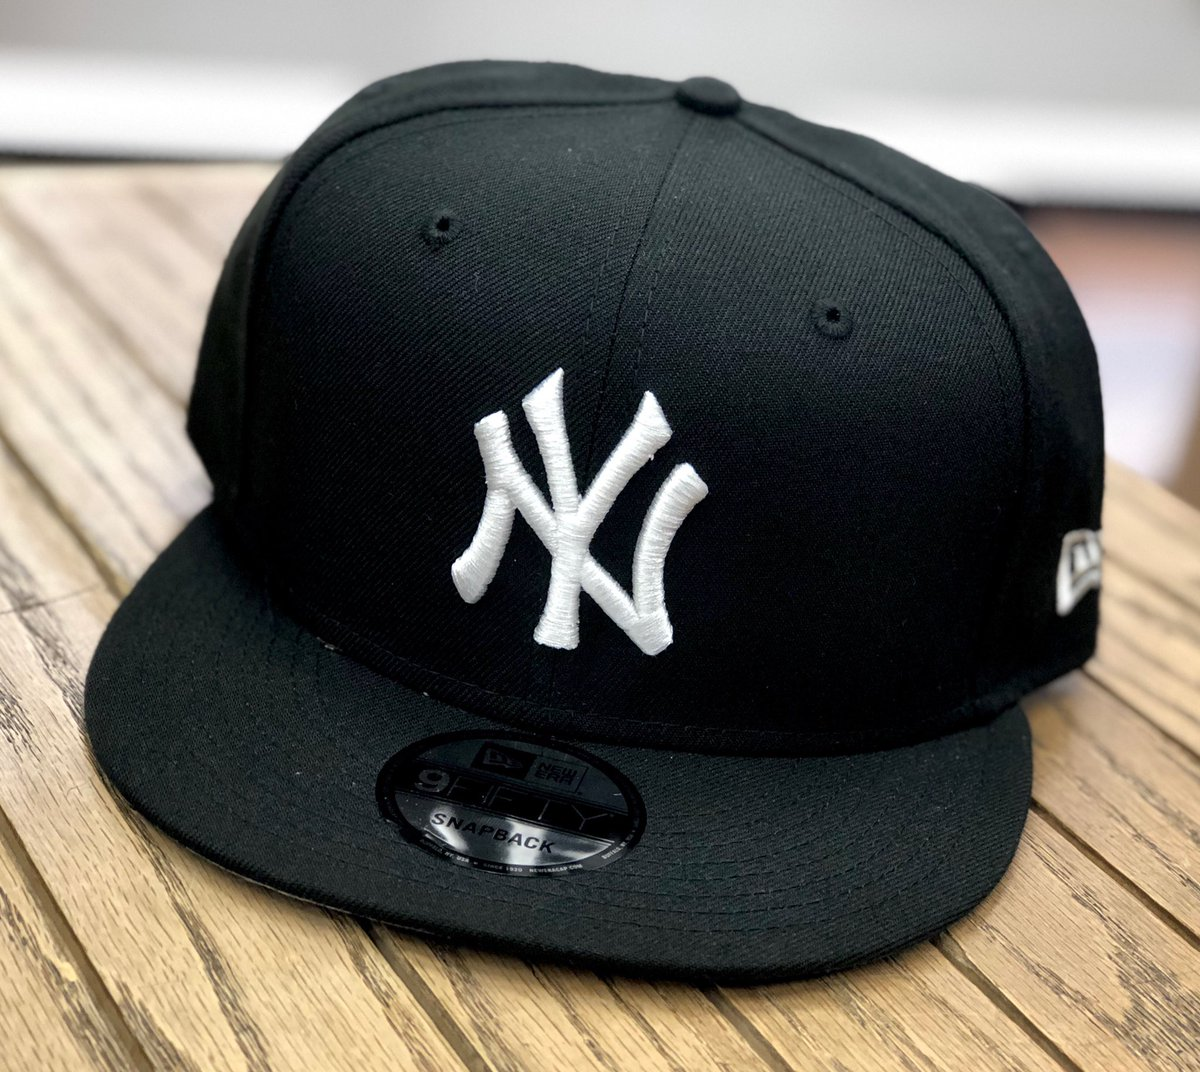 New Era Snapbacks available at a StreetGame near you!  #newera #neweracap #snapbacks #fitted #photooftheday #mlb #caps #photooftheday#sports #sportsleague #champs #teams #favorite #shopping #retail #streetwear #apparel #9fifty #9fiftysnapback #newyork #flagship #streetgameusapic.twitter.com/BNSziY8YBL